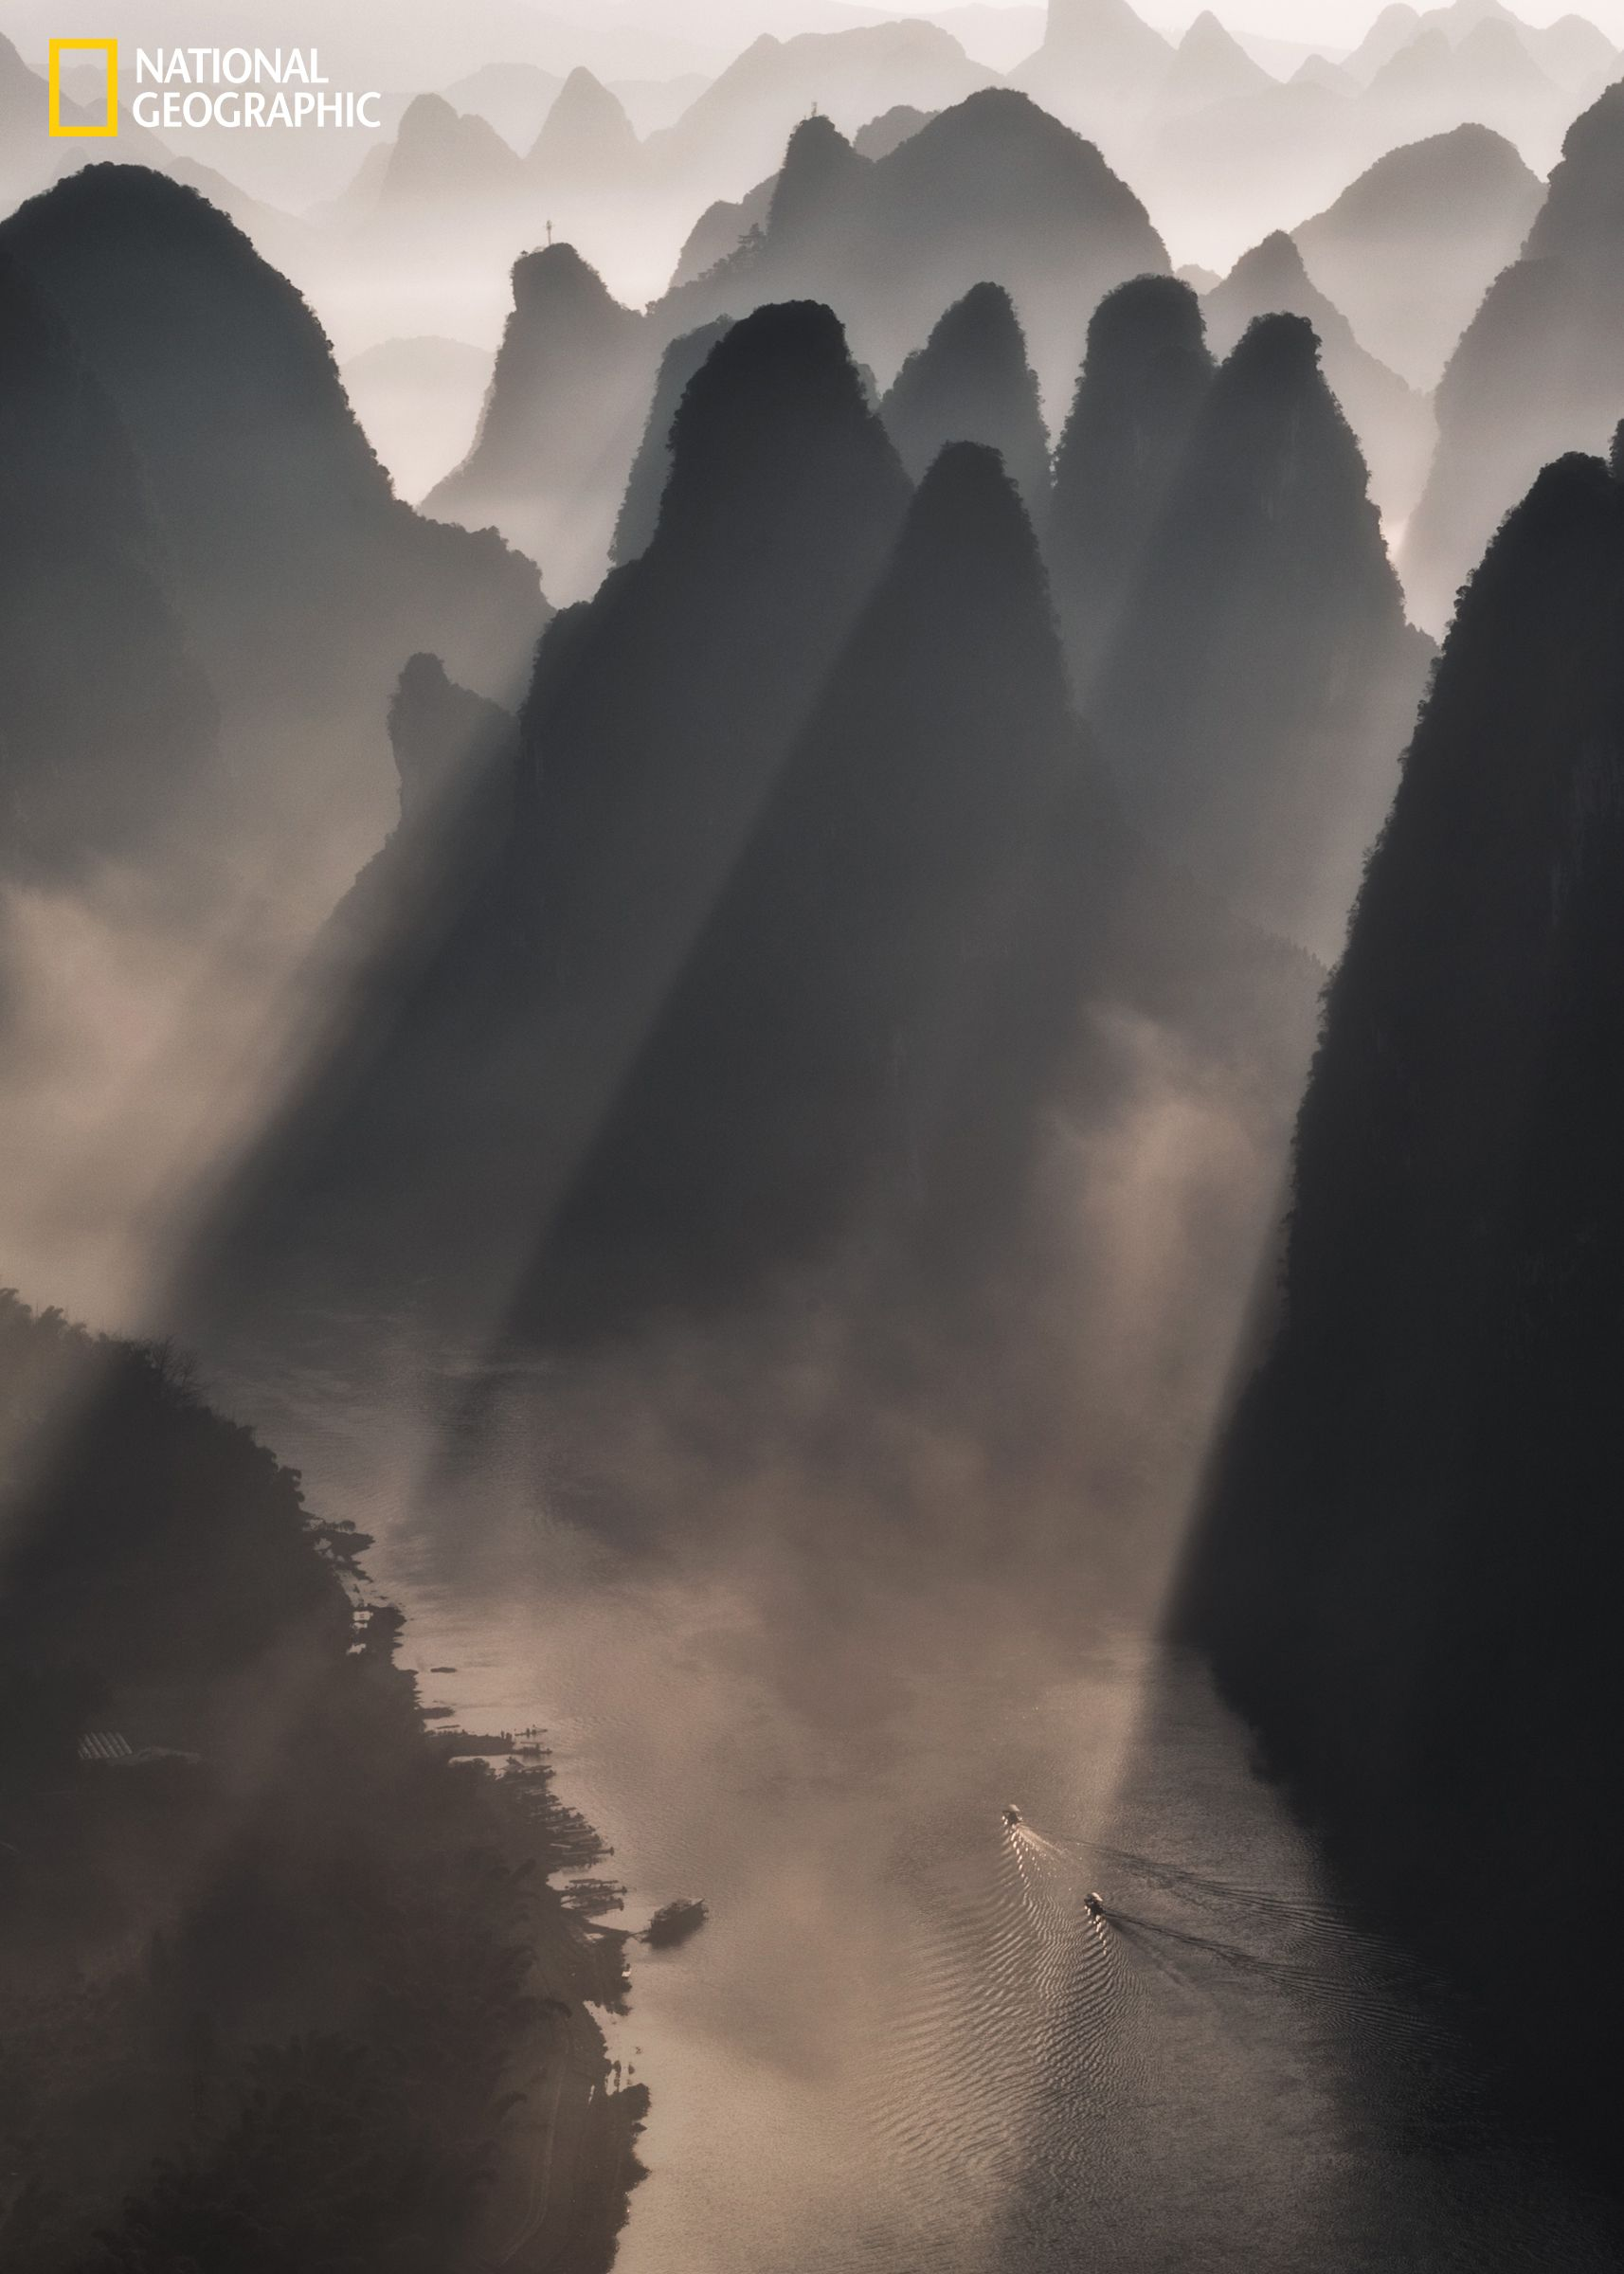 Photo And Caption By Kyon J 2016 National Geographic Nature Photographer Of The Year Th Nature Photographs National Geographic Photography Nature Photography